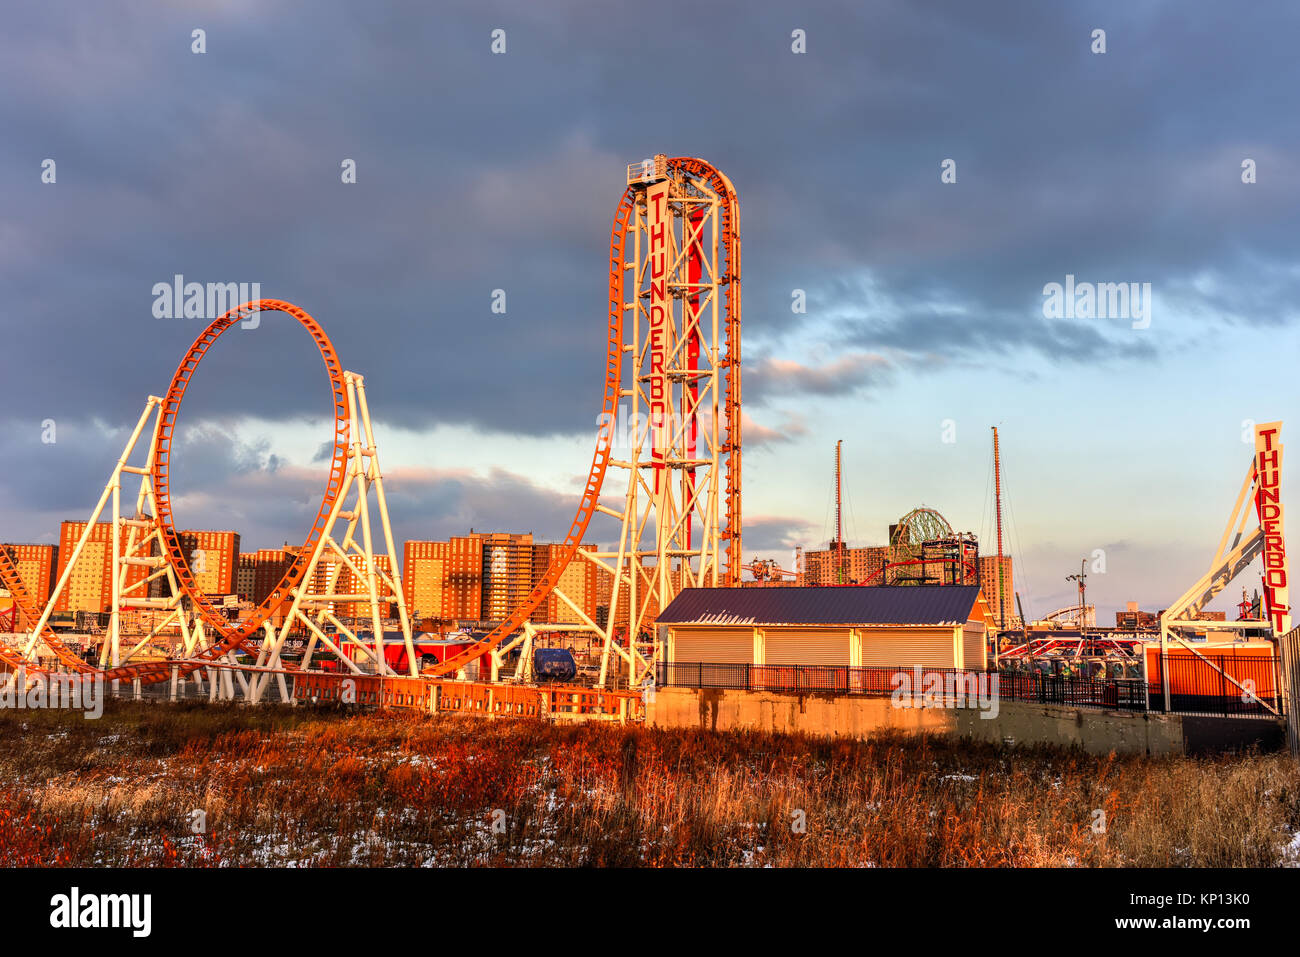 Brooklyn, New York - Dec 10, 2017: Thunderbolt Rollercoaster in Coney Island, Brooklyn, New York City at sunset. - Stock Image